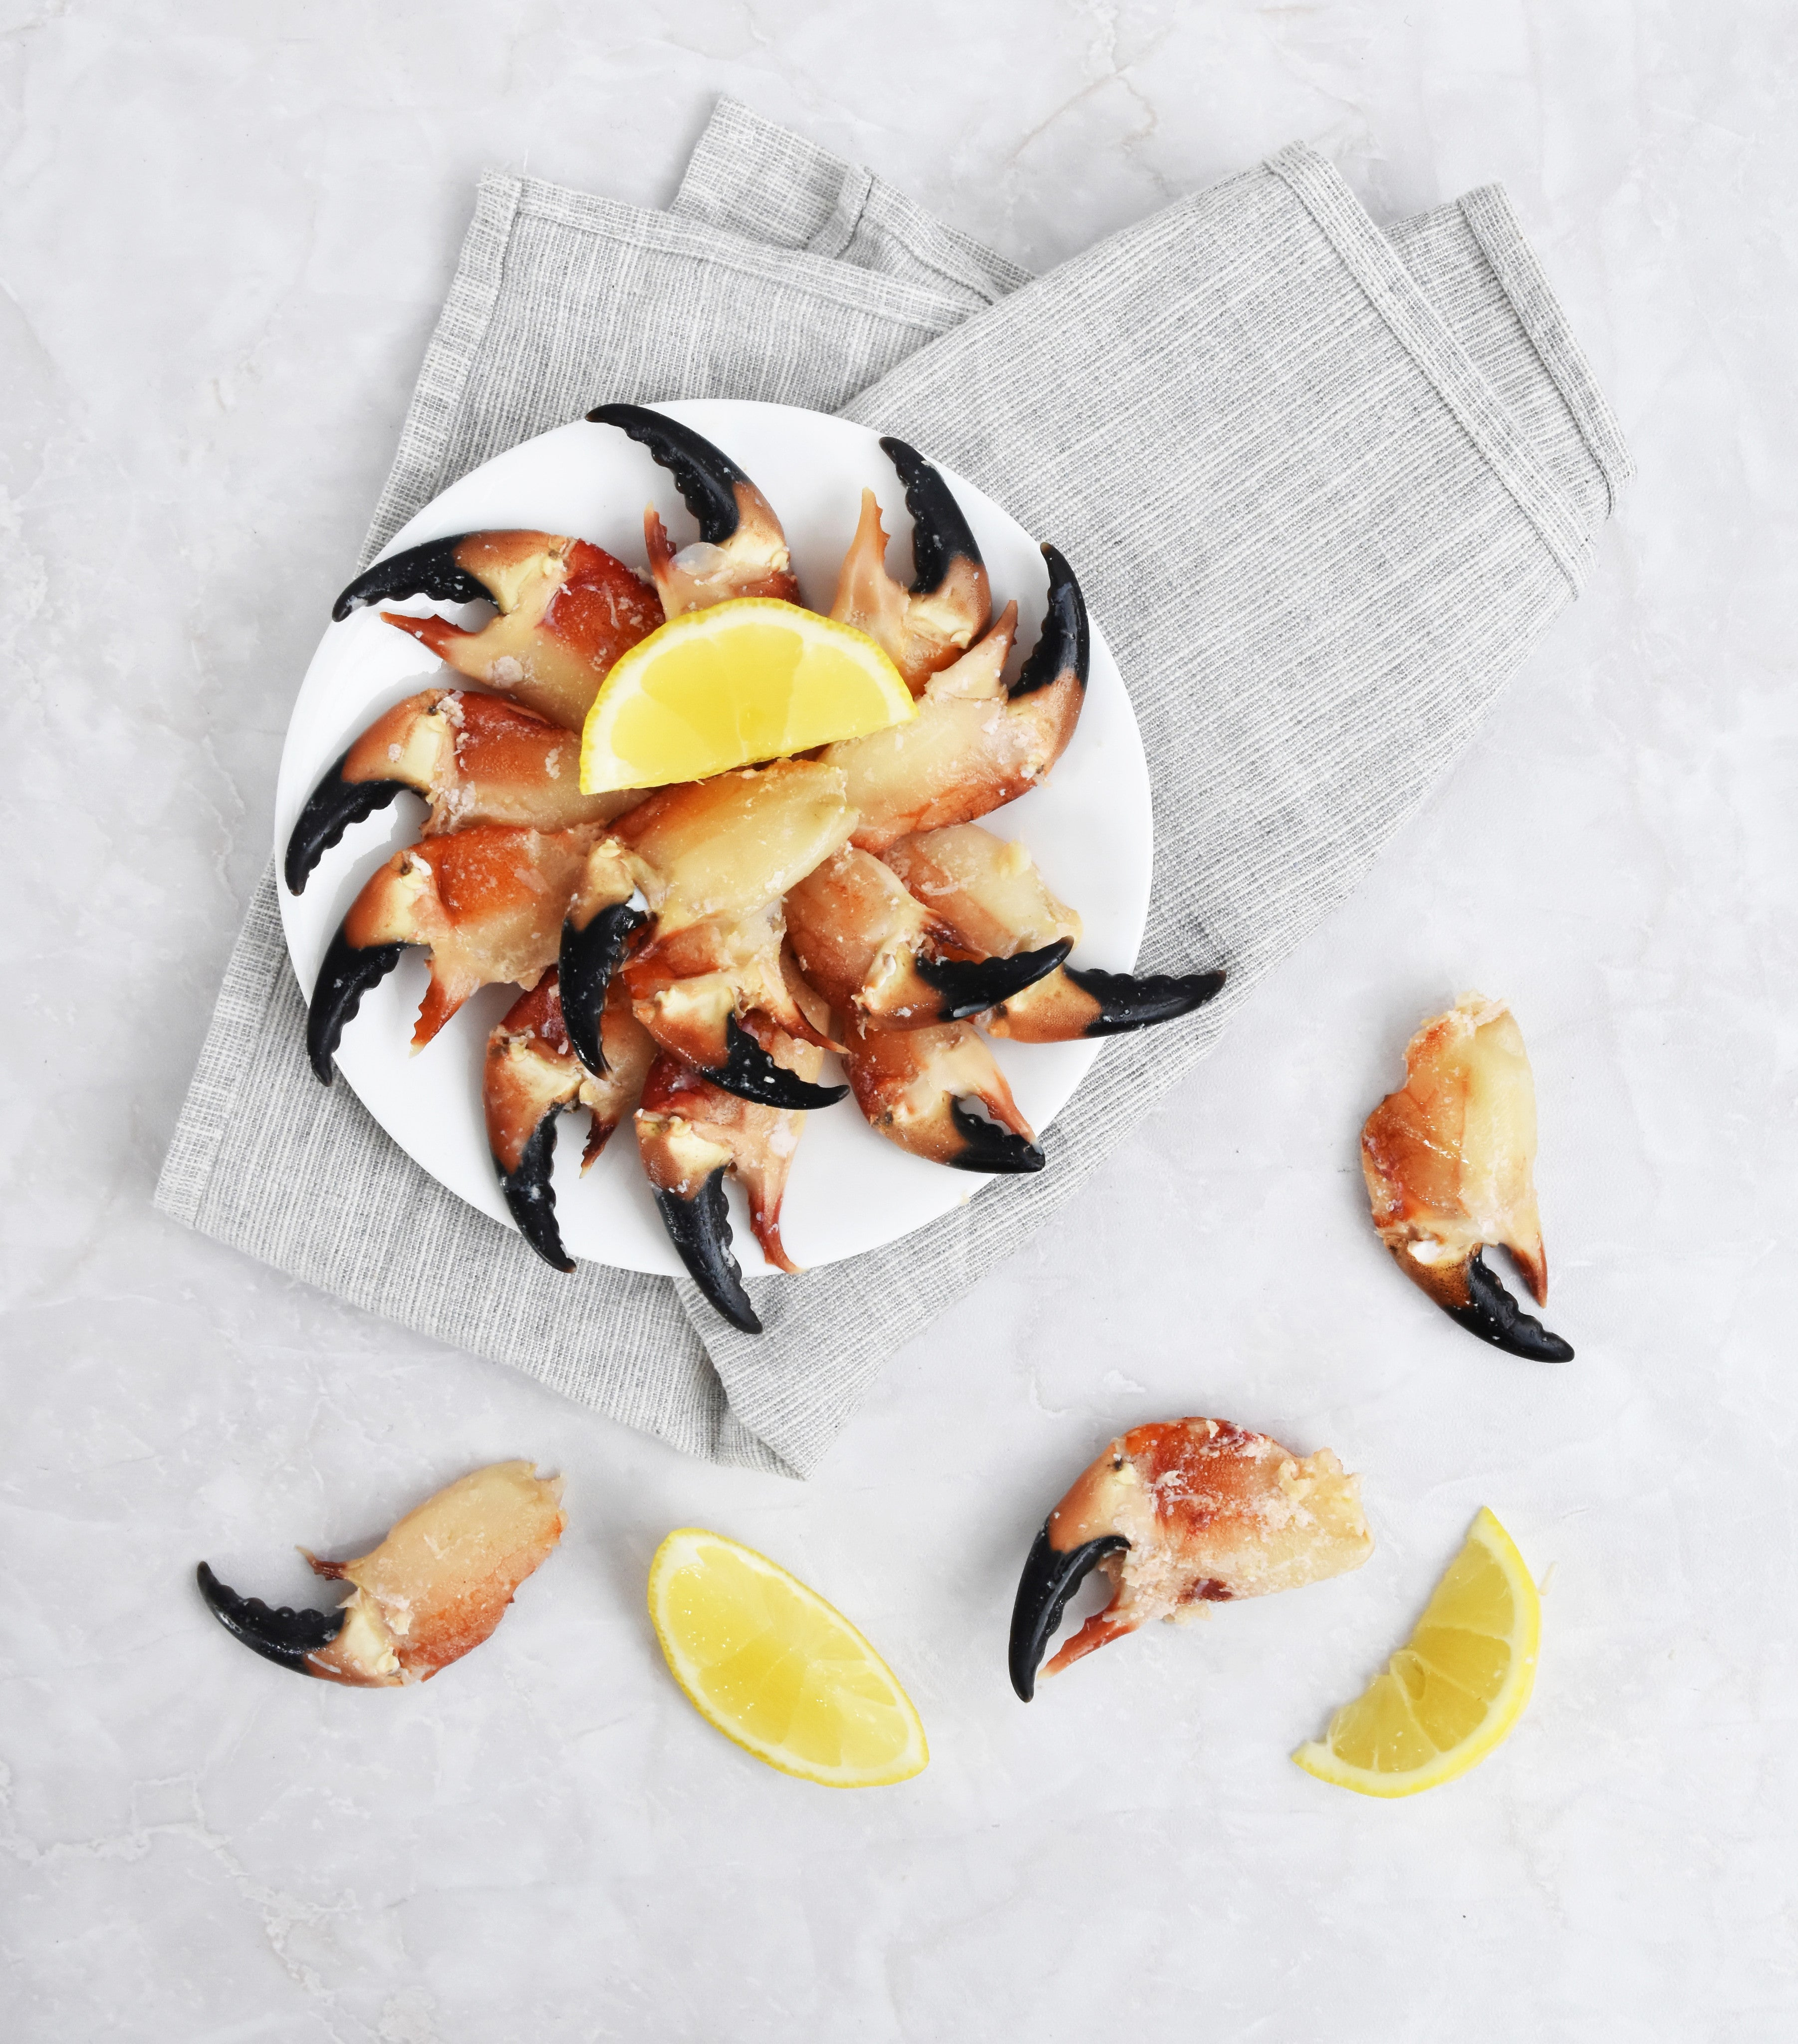 Sustainably Caught Devon Crab Claws